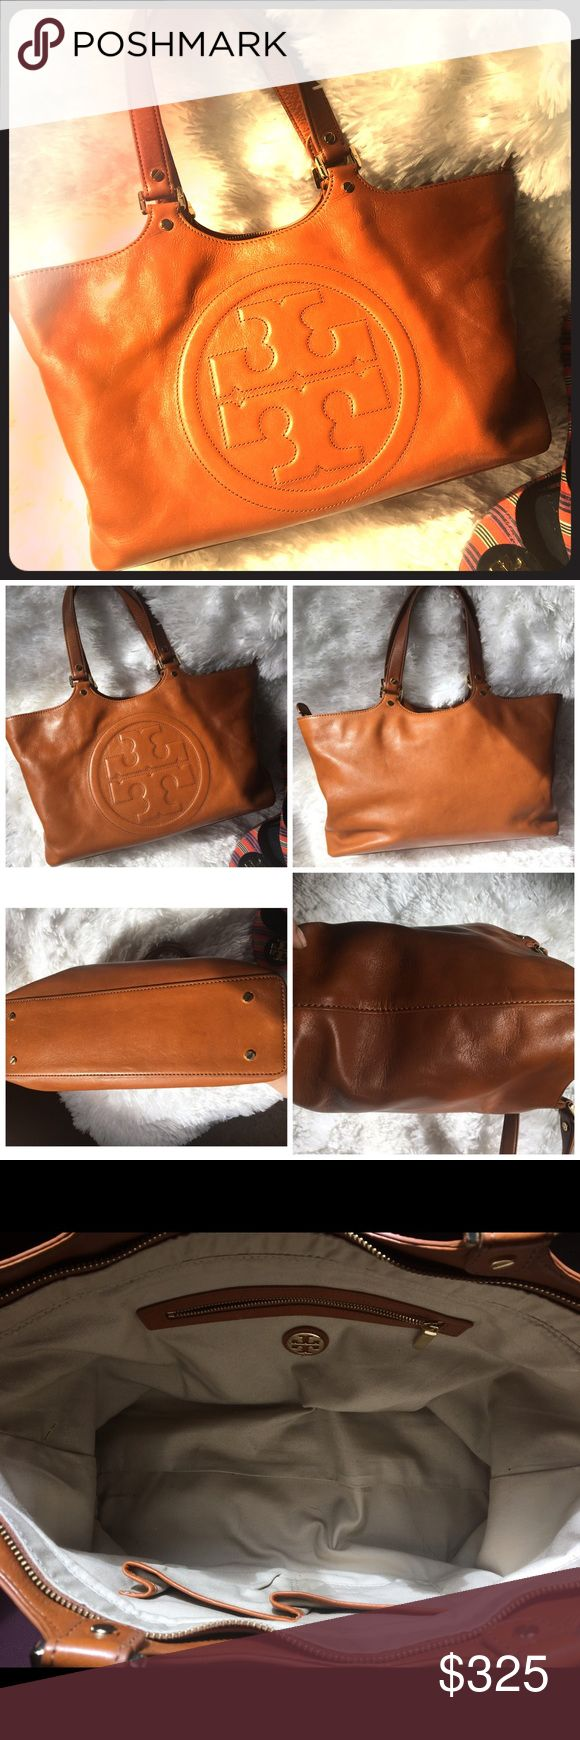 Tory Burch Bombe Burch Tote This is in excellent condition! Two minor imperfections shown in the last two photos (one handle small dye transfer, and bottom corner small scuff mark) do not impact the beauty, nor function of this classy must have piece! Leather tote in luggage color! Super clean inside and out! Price firm.. all offers will be negotiated through the offer option, no trades! Large!! Will hold your Mac Pro and other small laptops! Comes with detached tag, no duster Tory Burch…